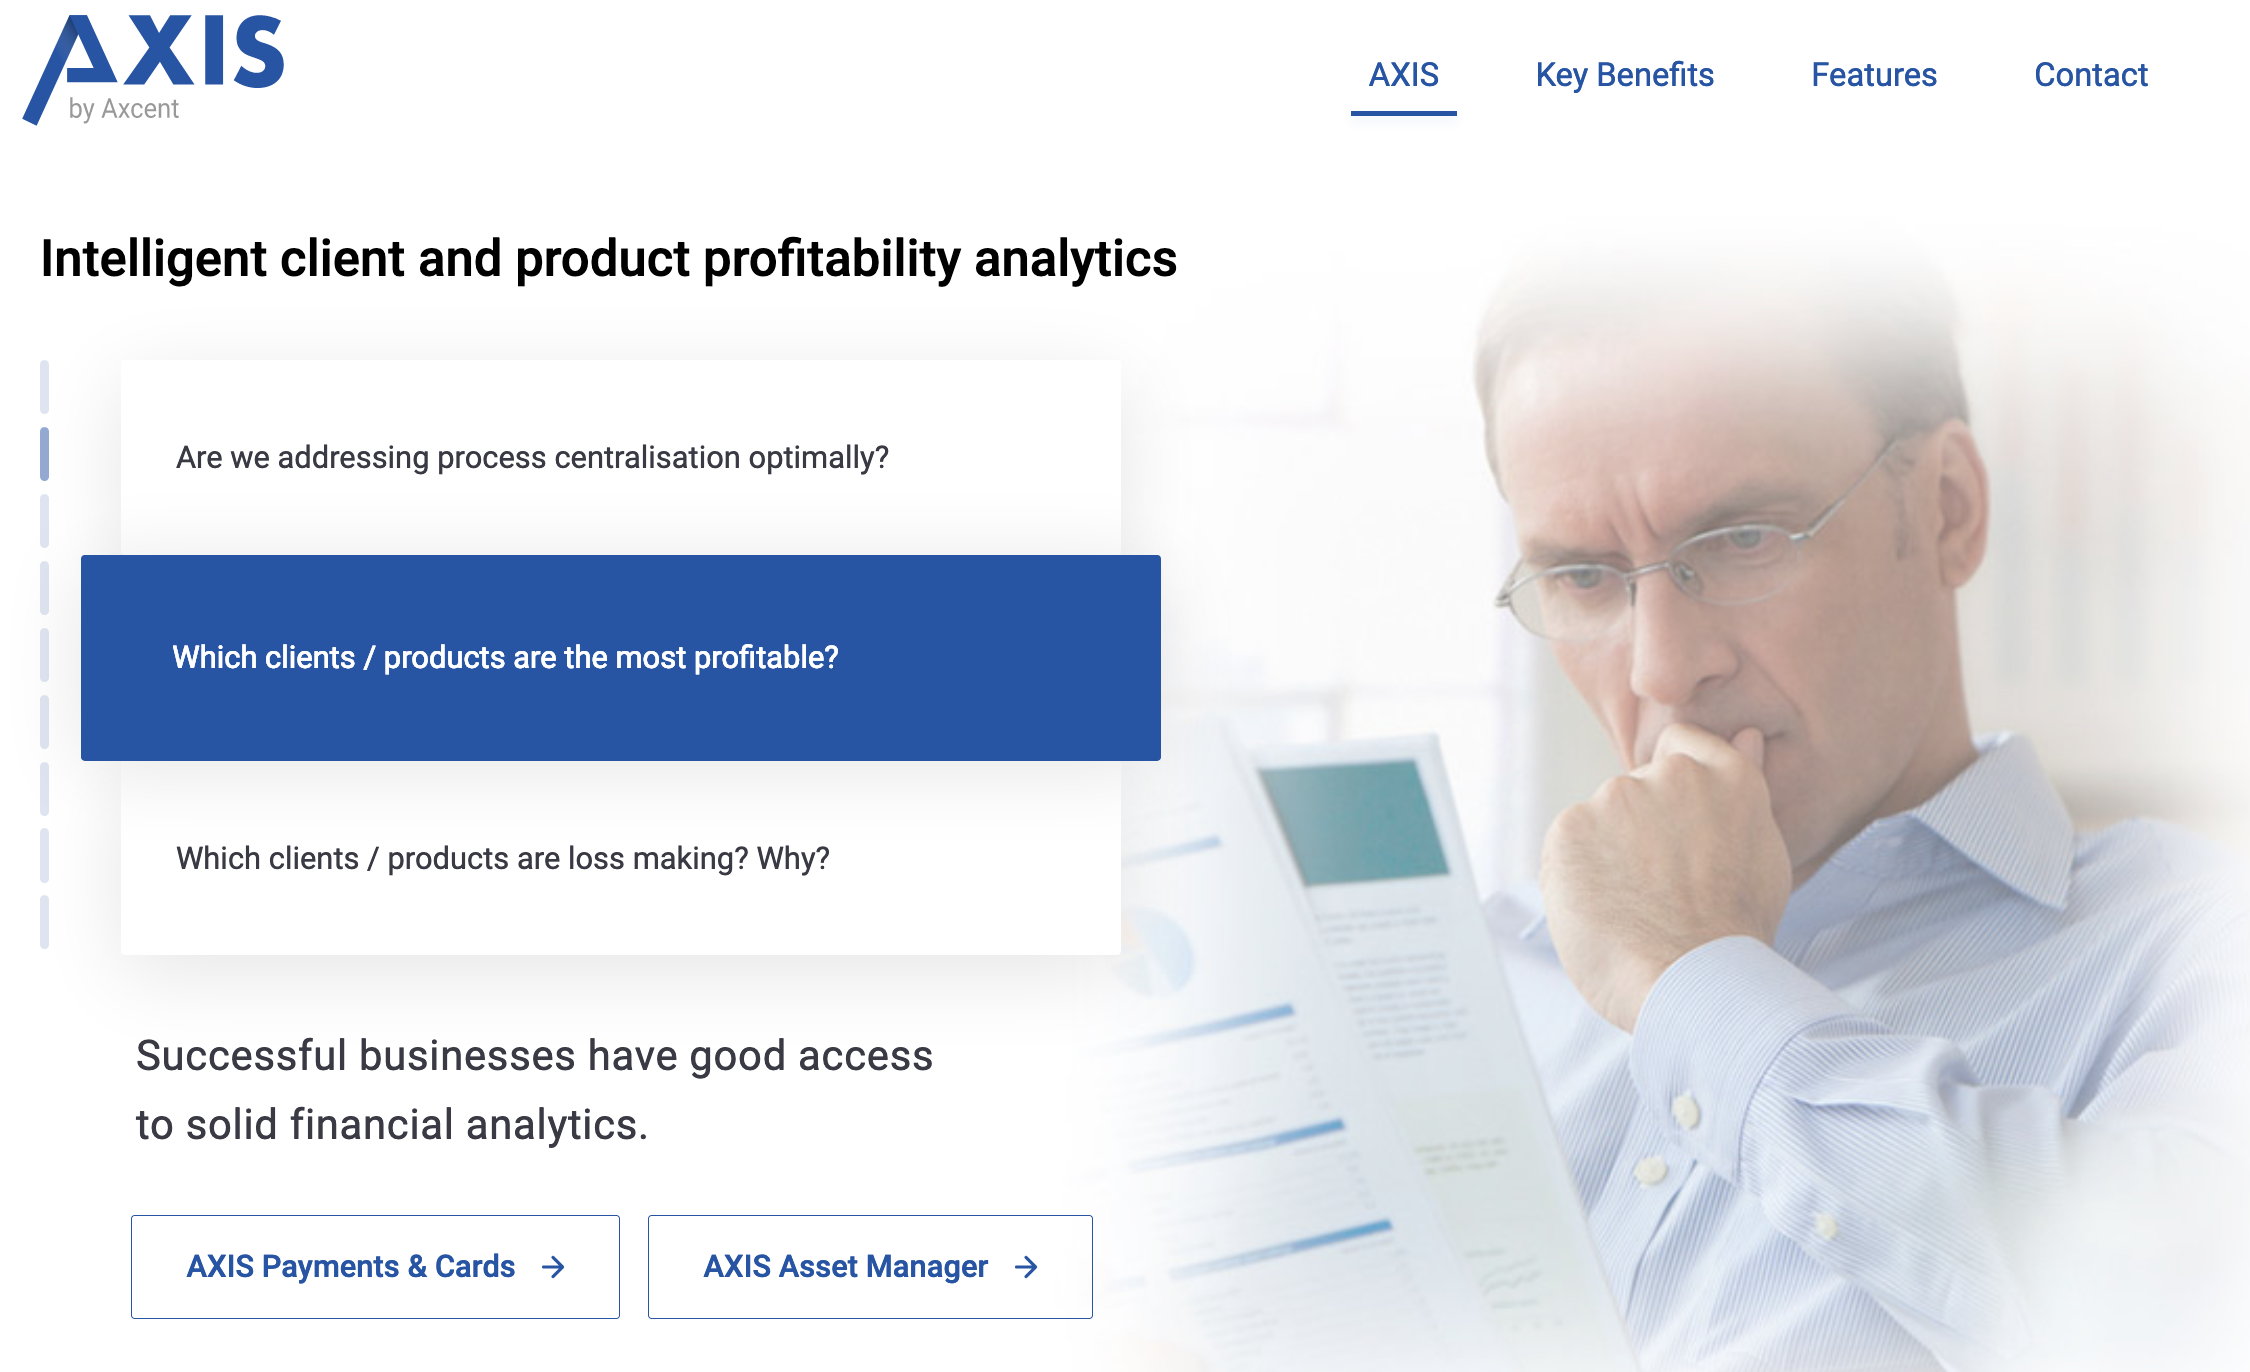 AXIS Intelligent client and product profitability analytics